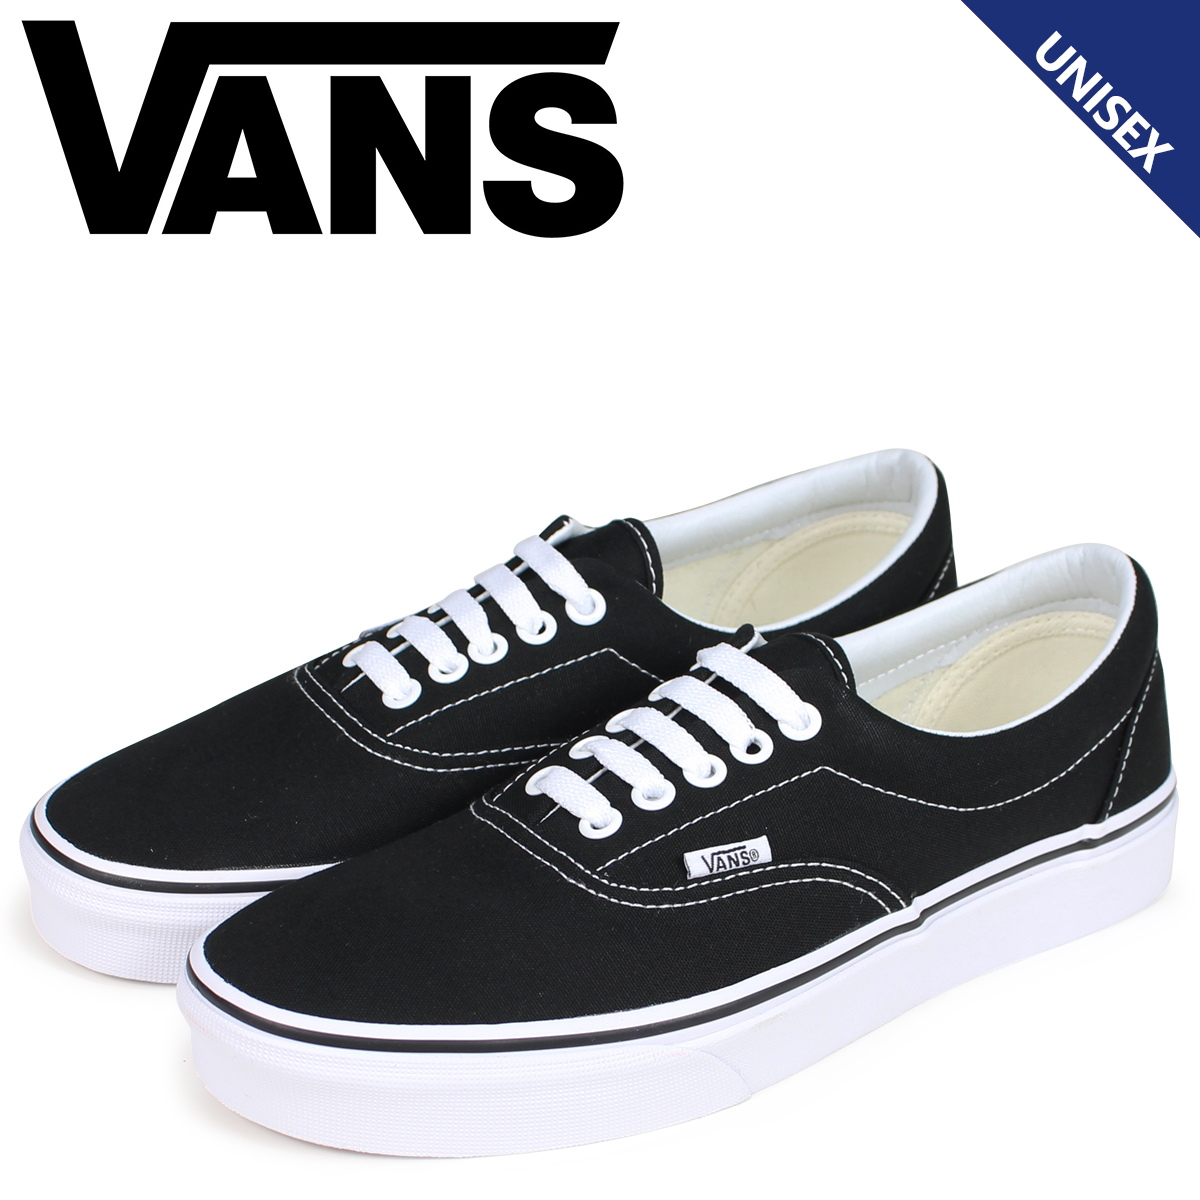 7caf5c68b3 Vans VANS ERA sneakers gills men gap Dis station wagons VN000EWZBLK black  black  the load planned additional arrival in reservation product 3 26  containing